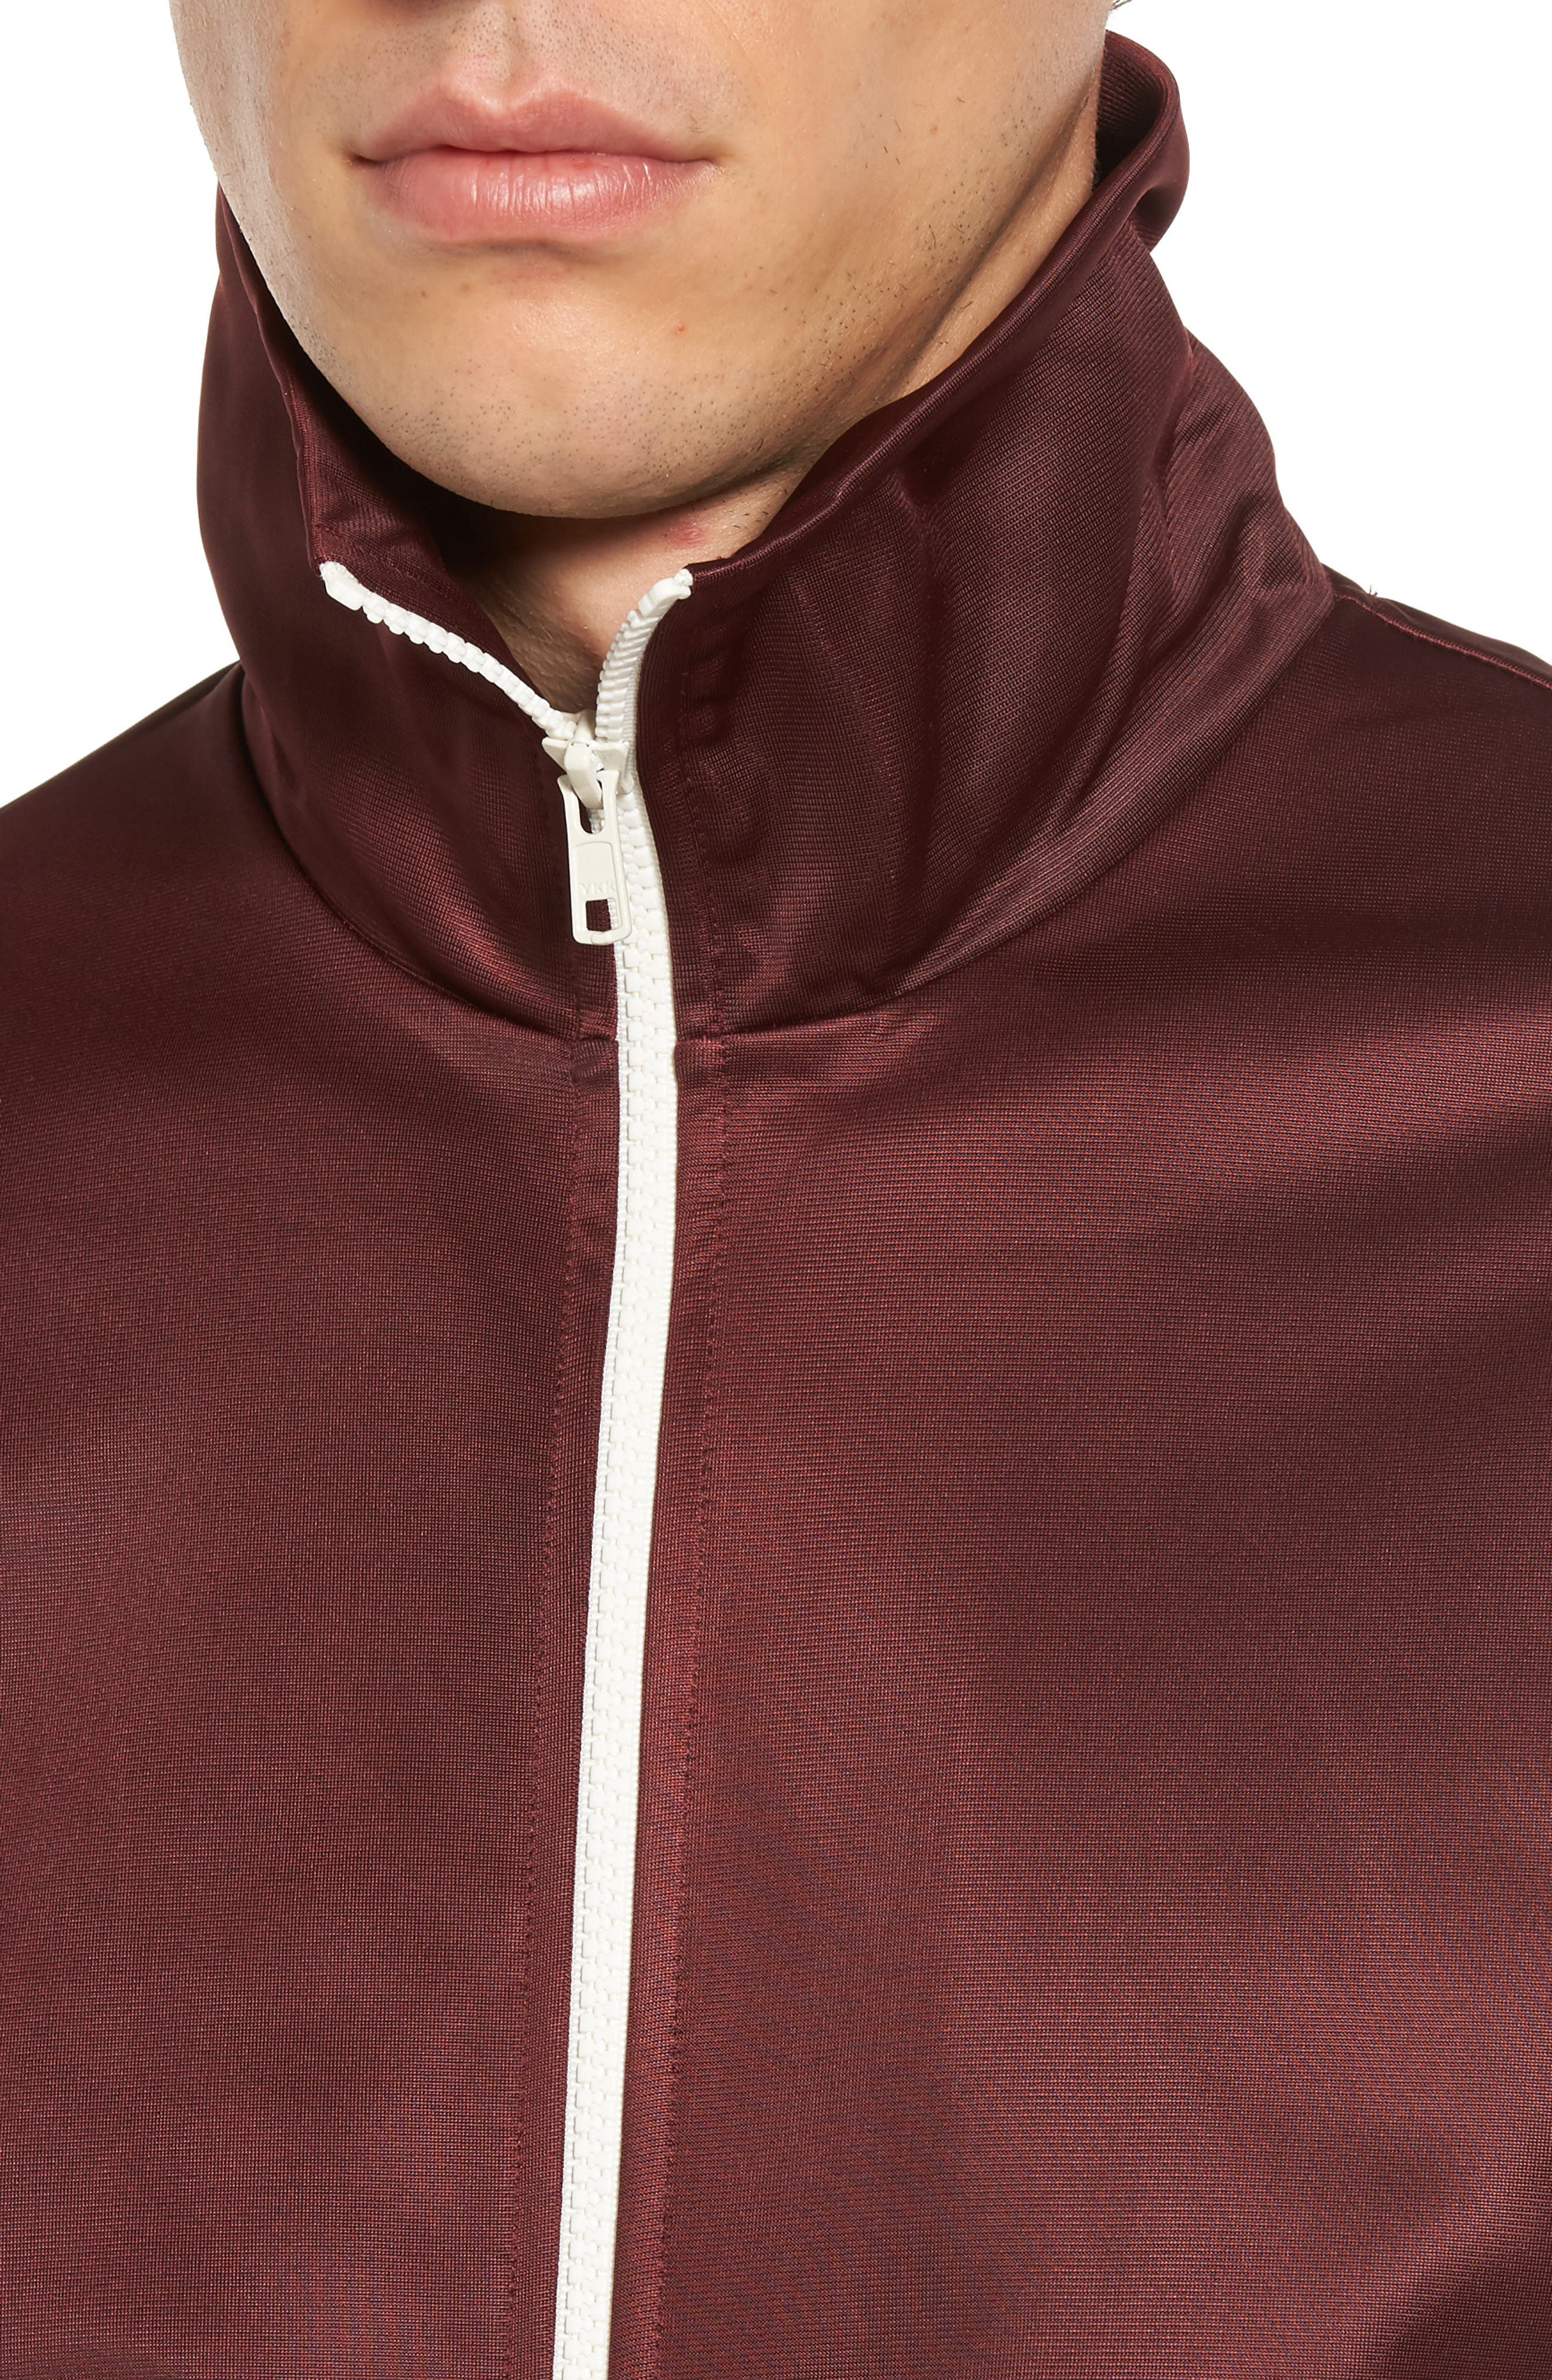 Marcus Track Jacket,                             Alternate thumbnail 4, color,                             Red Port